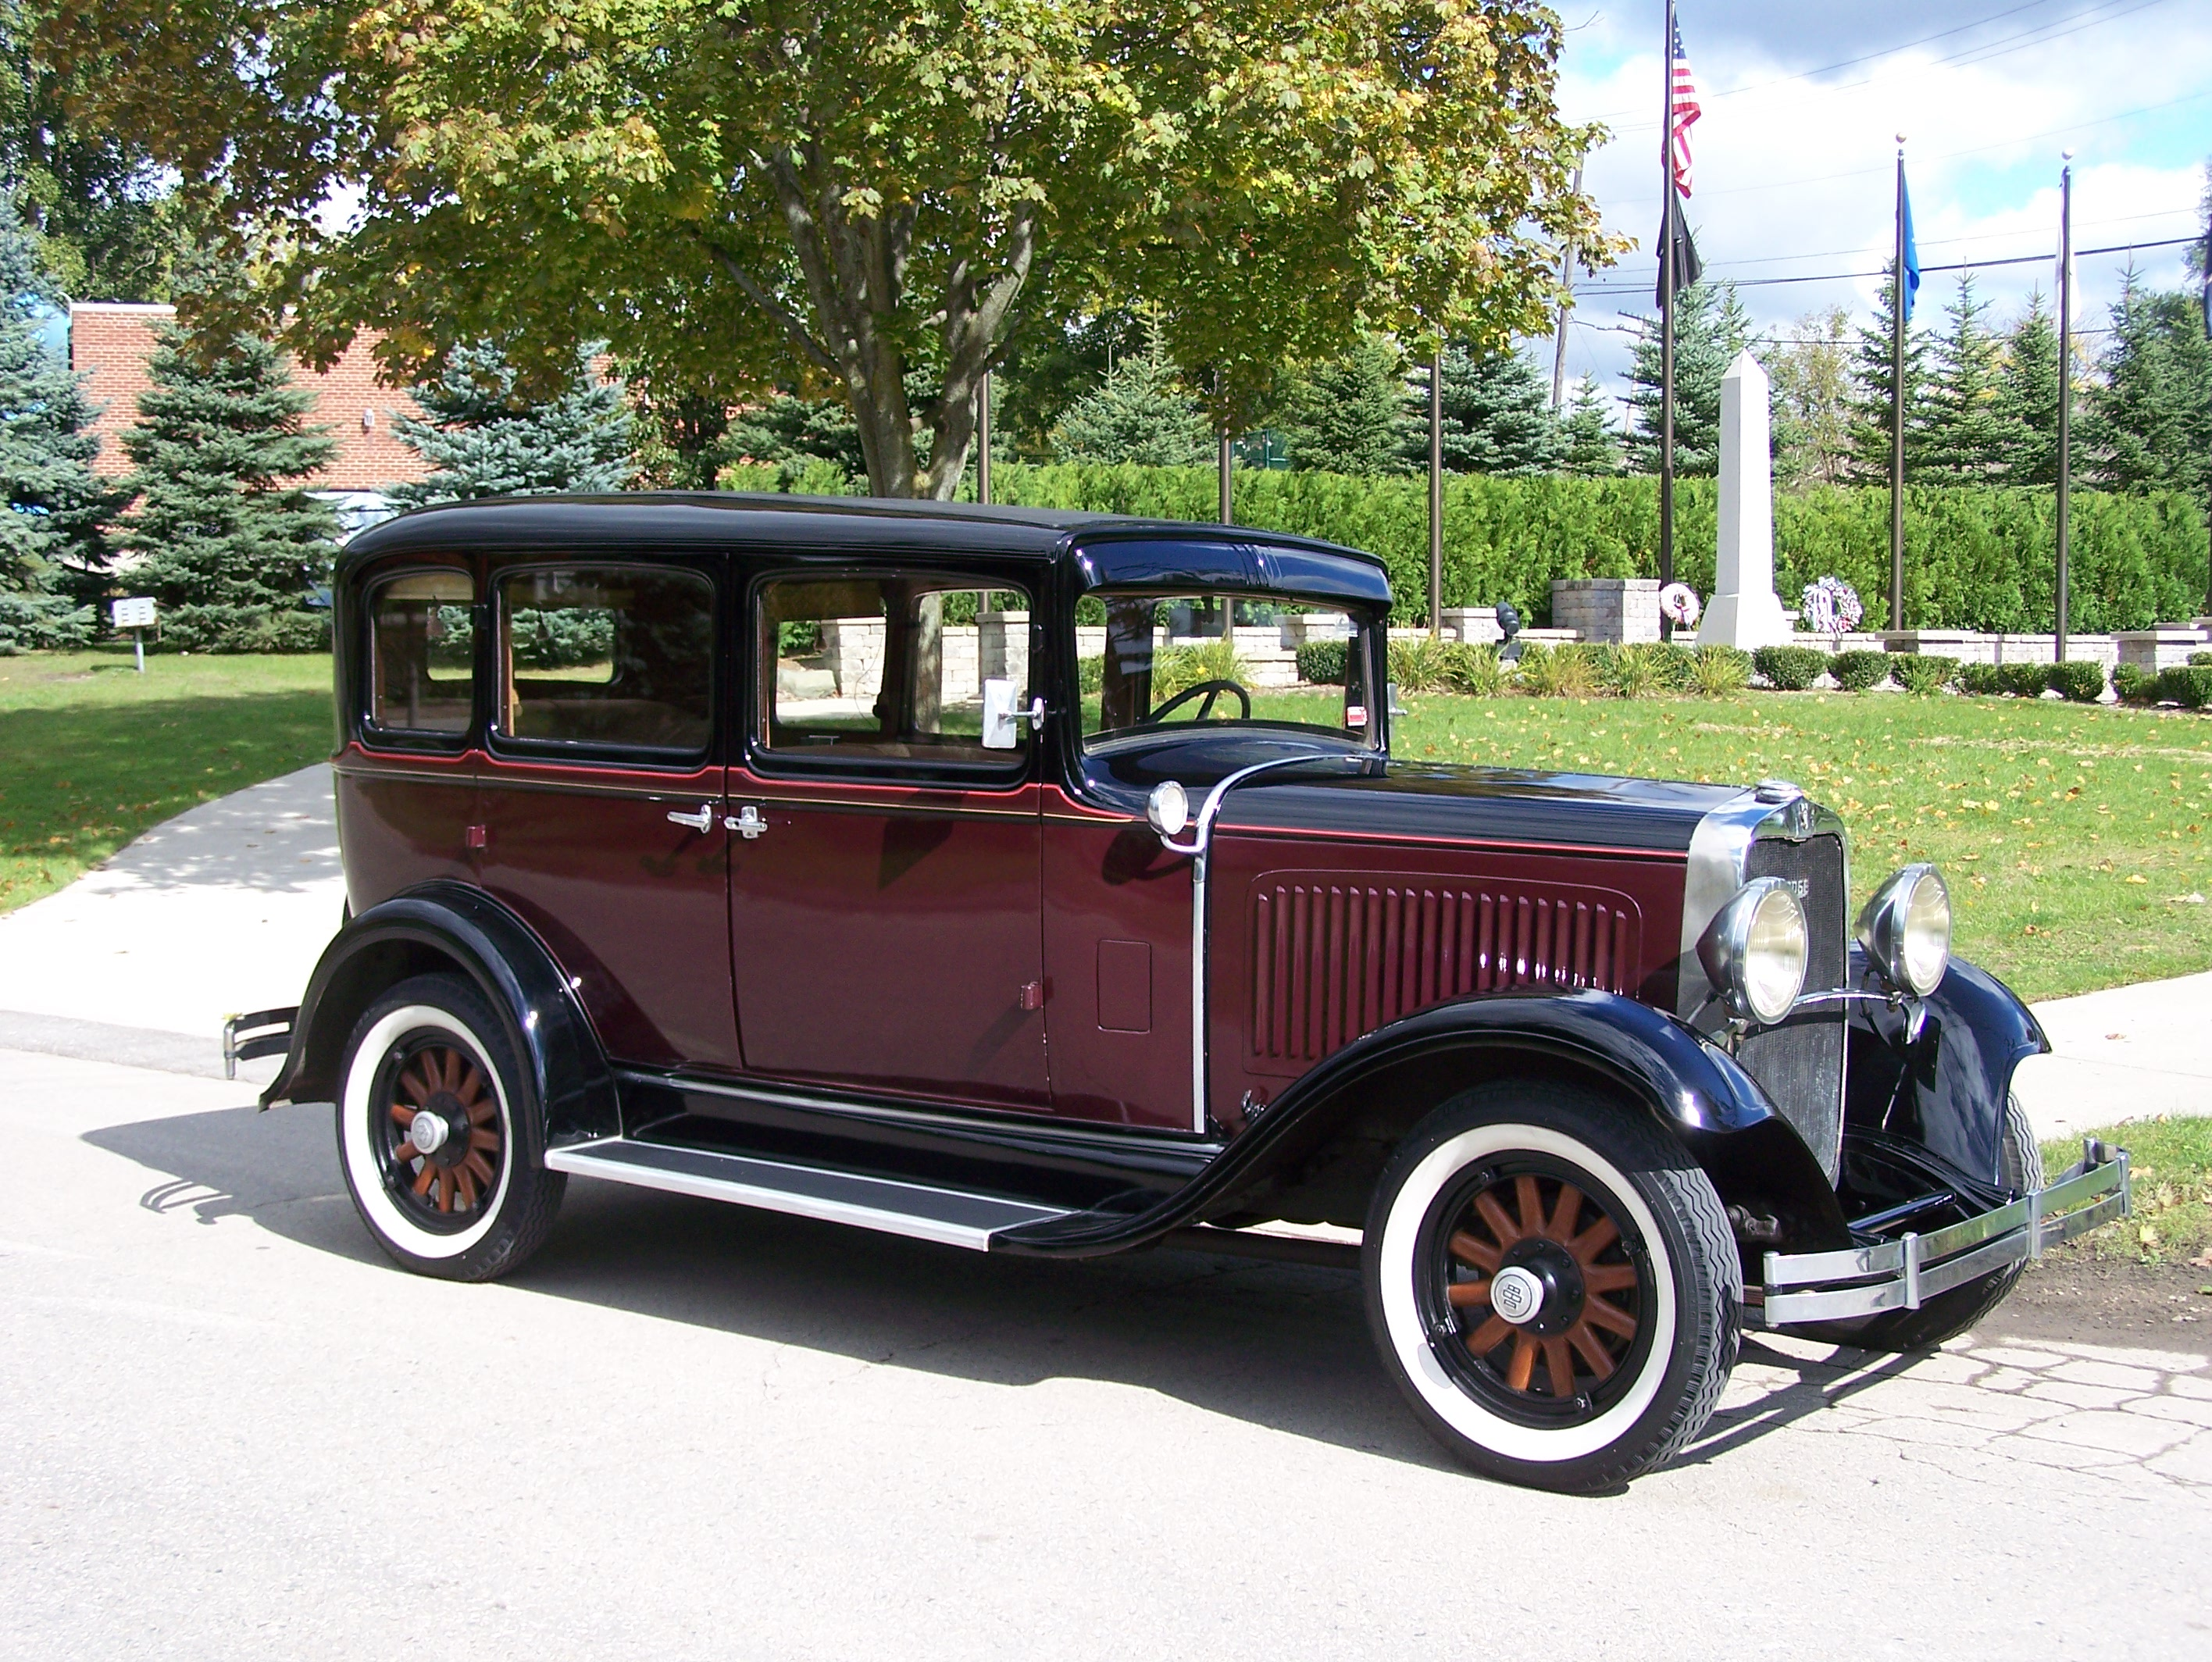 1930 Dodge Dc8 High Quality Background on Wallpapers Vista